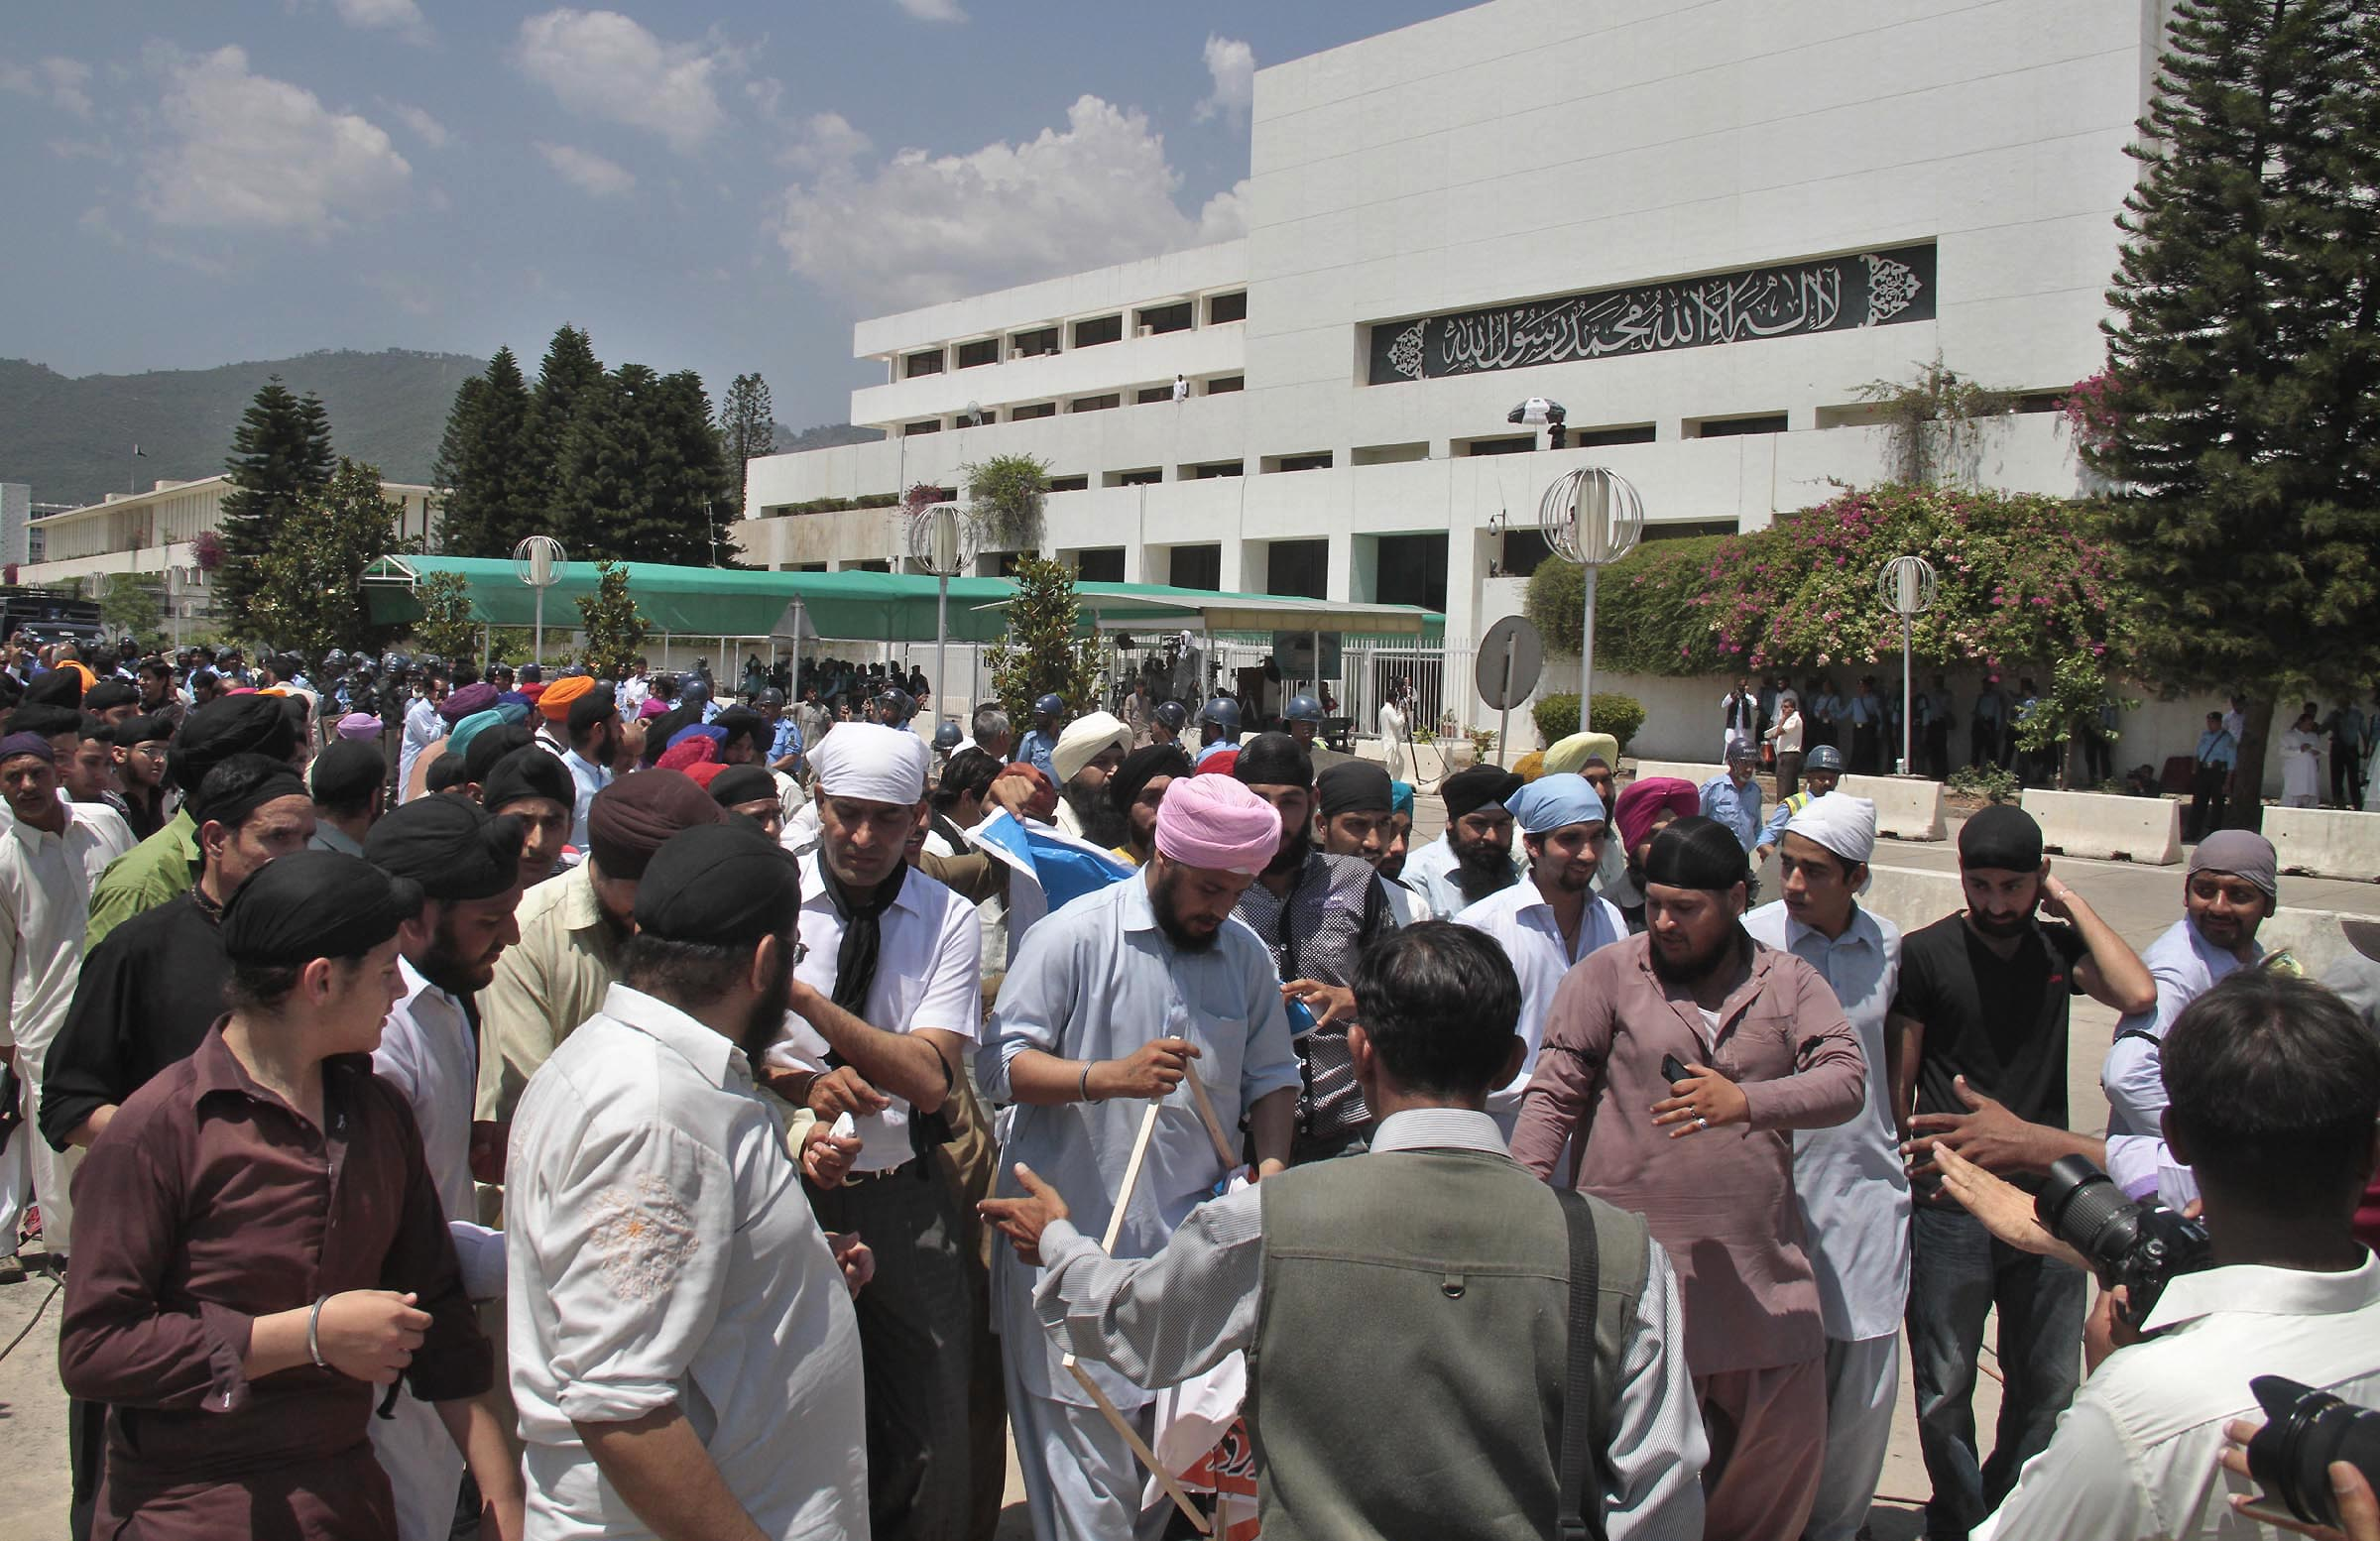 protesting-sikh-community-members-walk-through-the-courtyard-of-the-parliament-house-on-friday-after-they-had-stormed-its-gate-photo-muhammad-javed-express